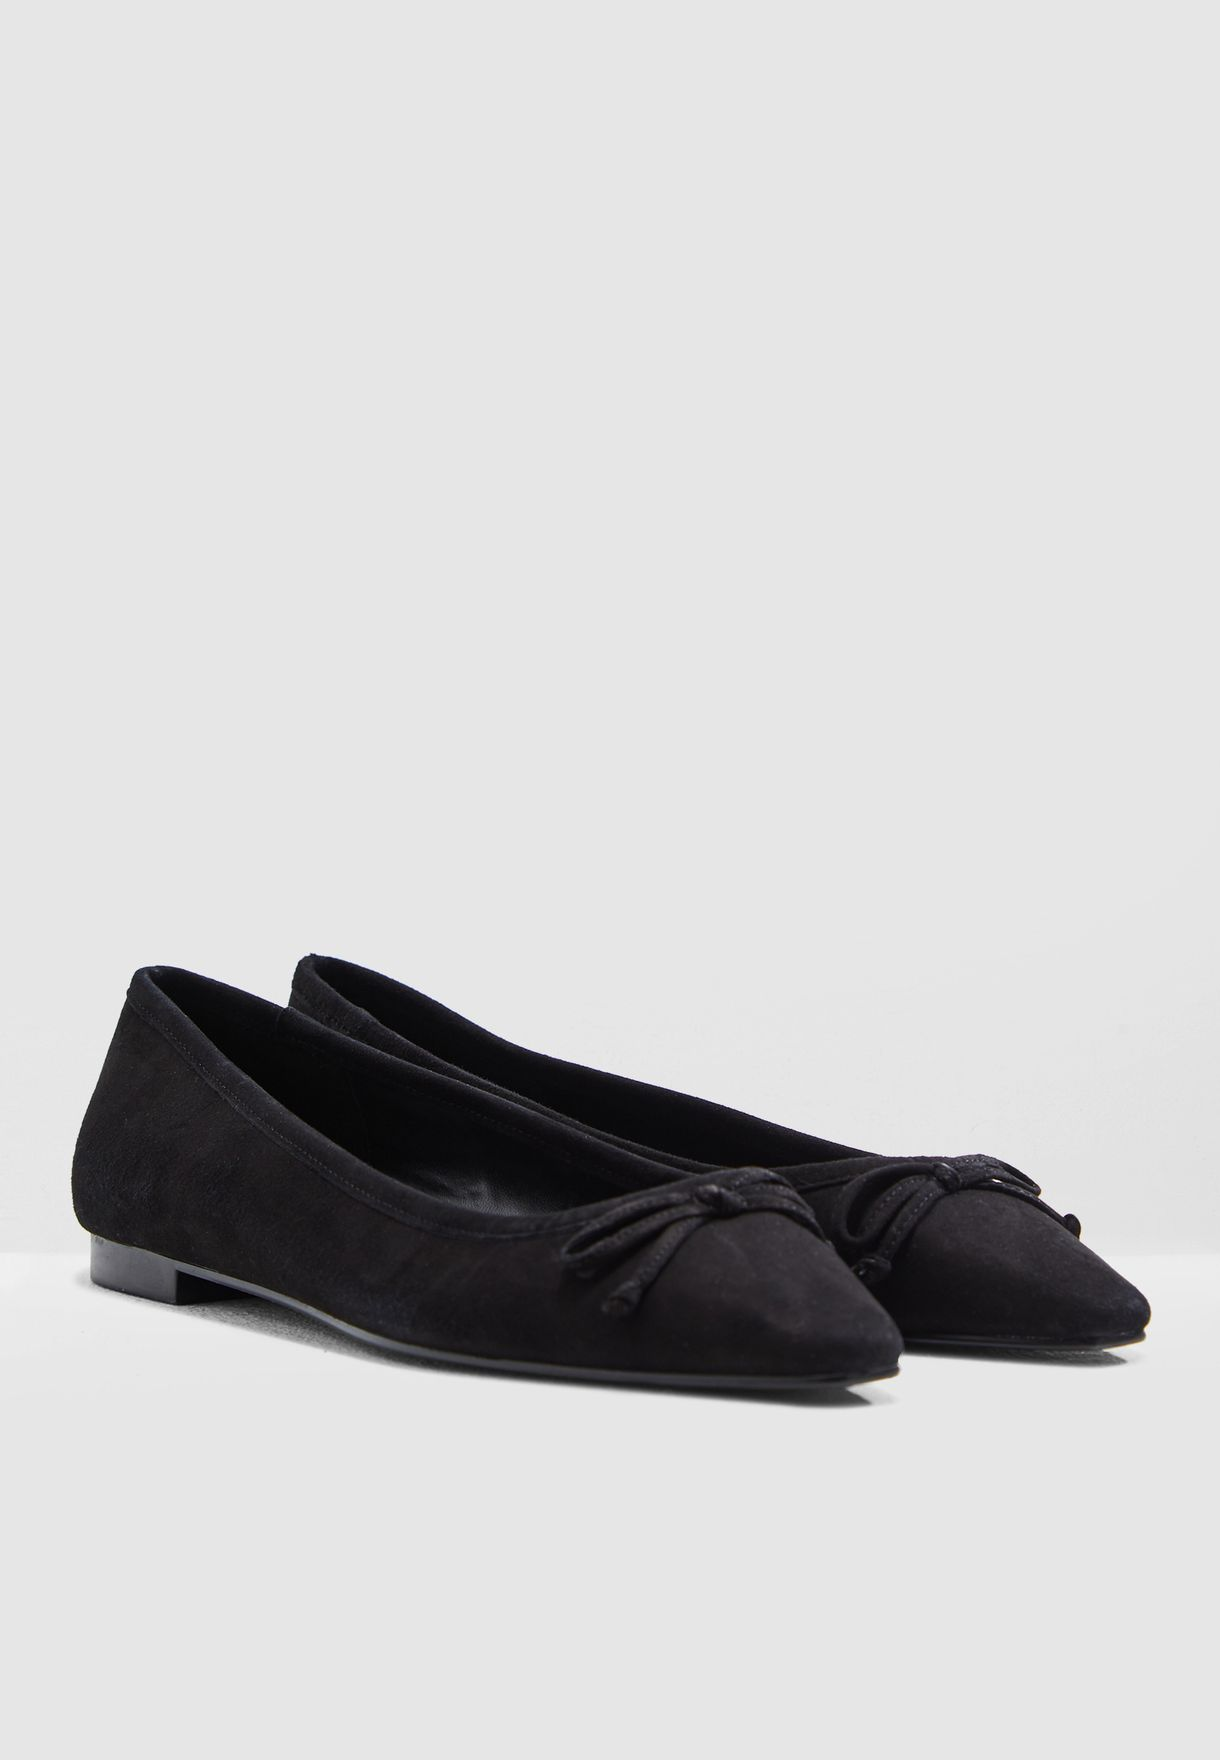 Saudi For Women Shop Greta Mango In 43040721 Ballerina Black q8Ow6pxUZ